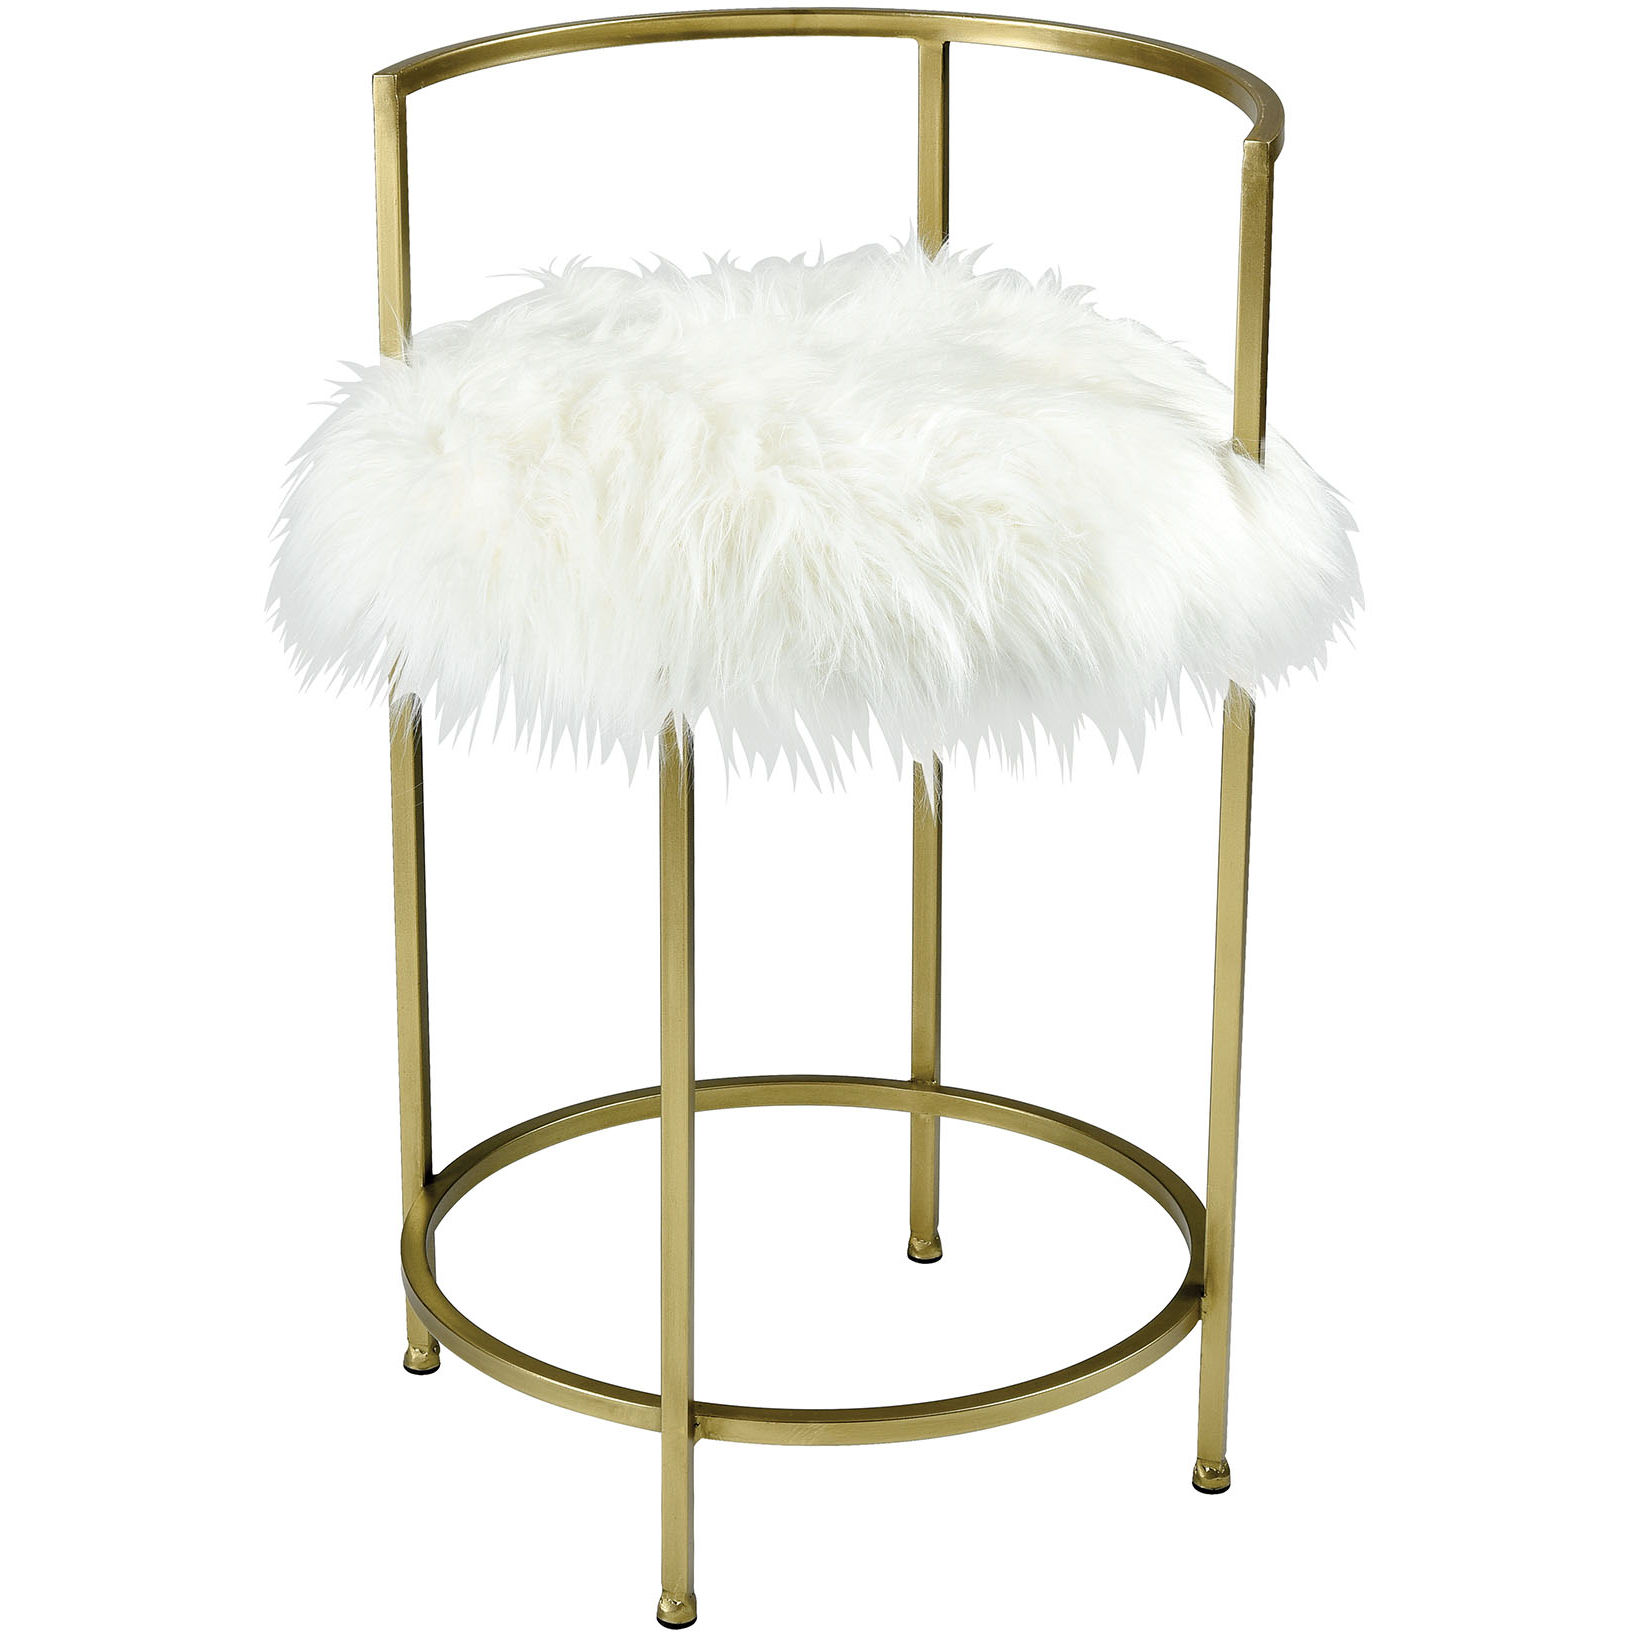 new product 14125 e592b Charmed I'm Sure Bar Stool in White Faux Fur & Gold Metal by ELK Home